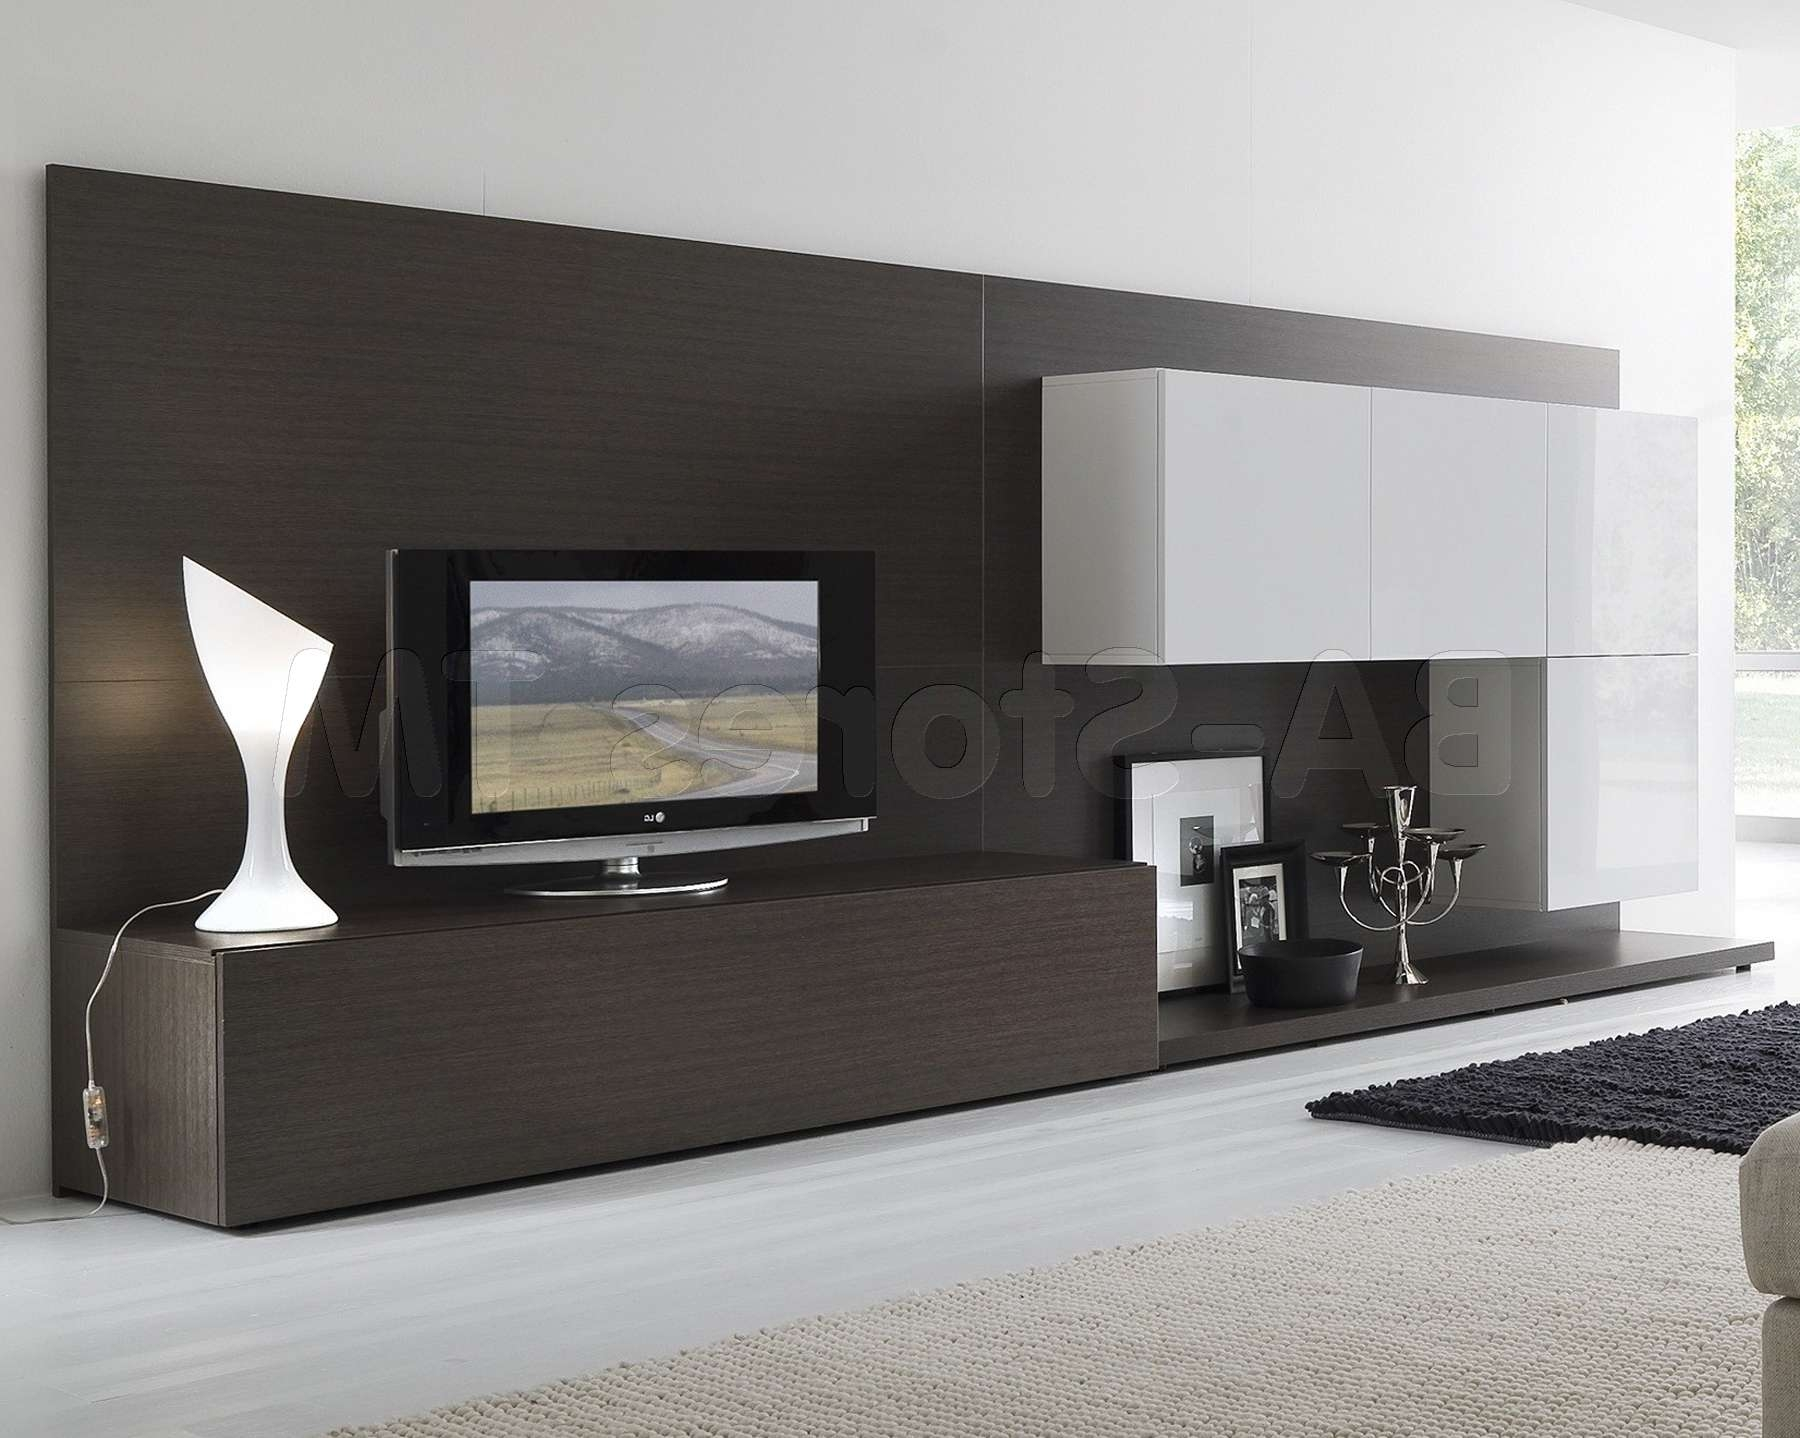 White And Black Wooden Cabinet With Rectangle Flat Screen Tv And Throughout Modern Tv Cabinets For Flat Screens (View 8 of 20)